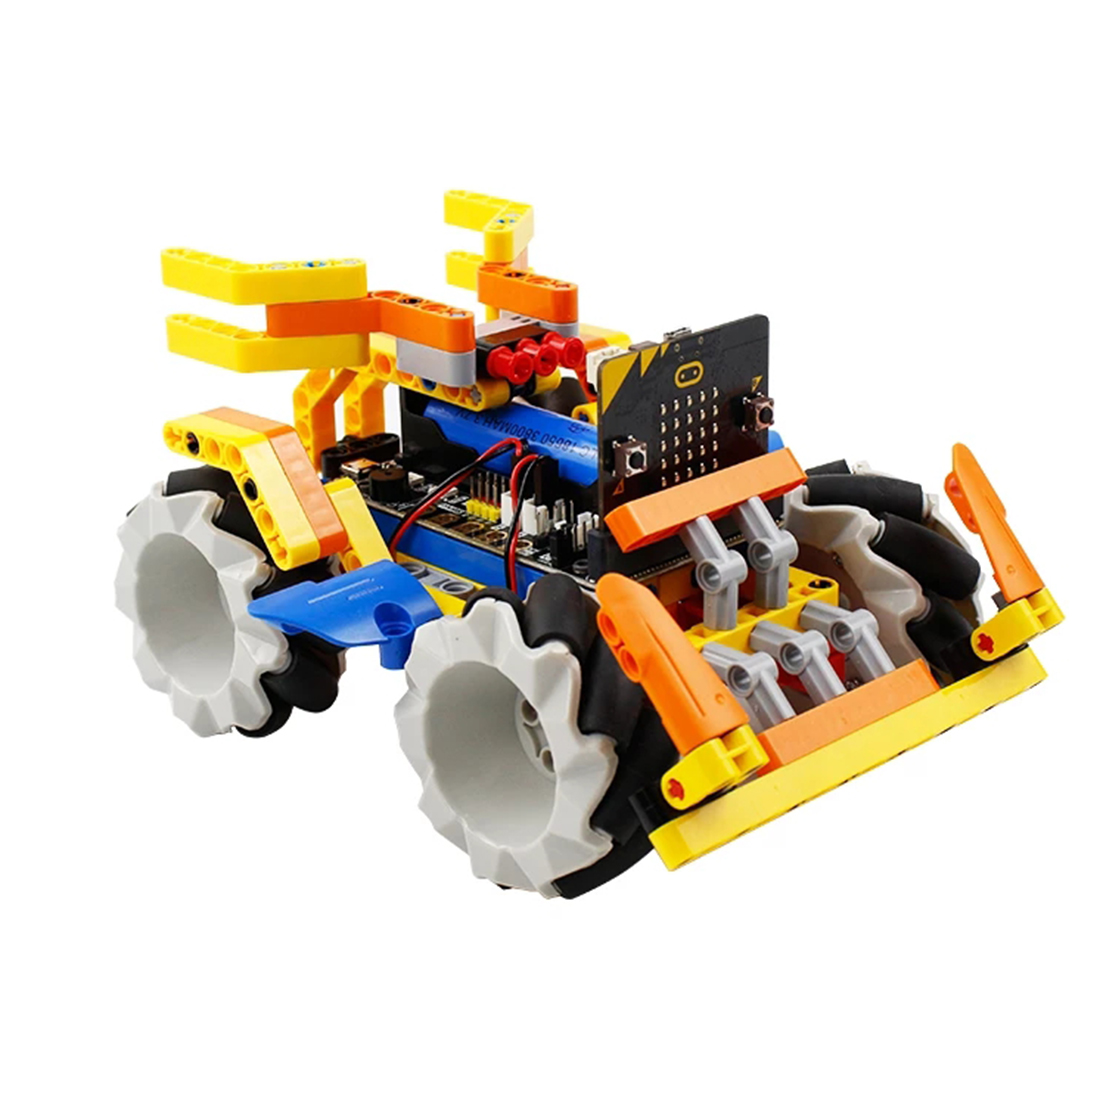 Program Intelligent Robot Building Block Kit Mecanum Wheel Robot Car For Micro: Bit (No Micro:Bit Board) Children Education Toys